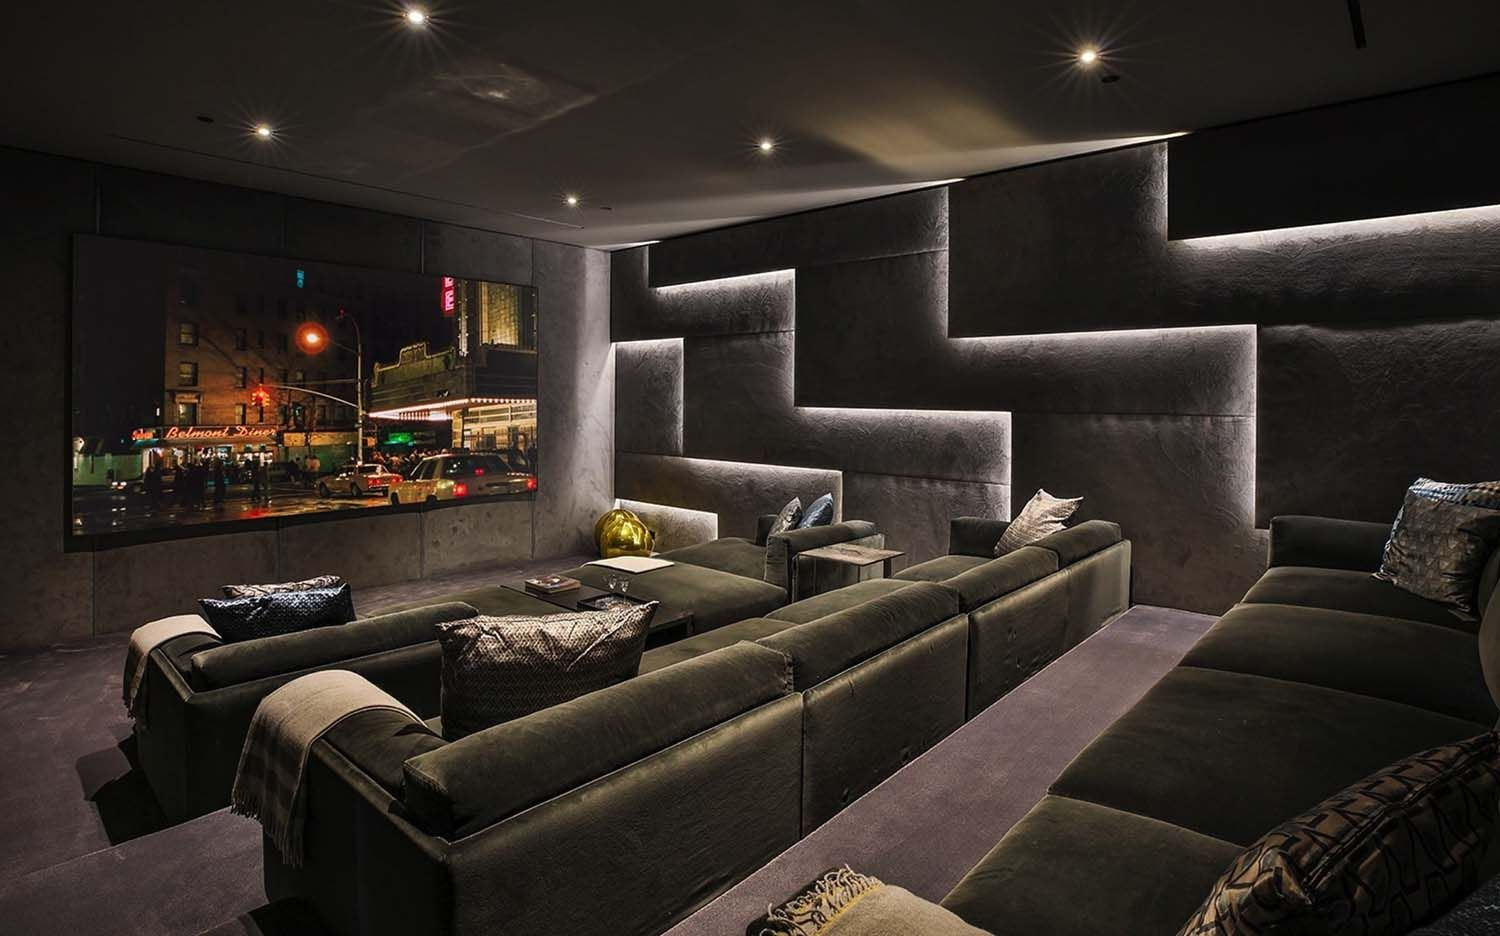 Sumptuous Luxury Modern Home With Views Over The La Skyline Luxury Modern Homes Home Theater Seating Home Theater Room Design